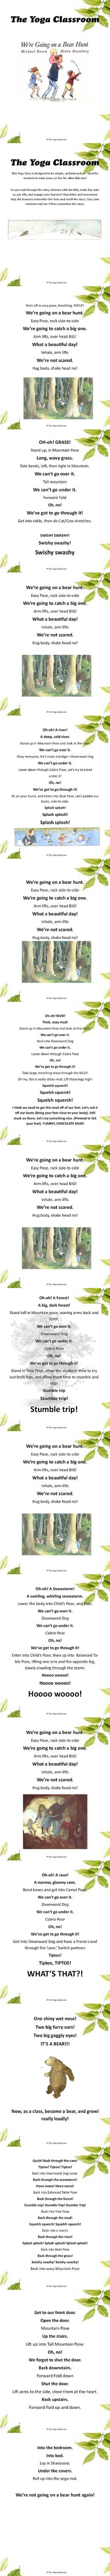 This story is beloved! Students will enjoy this active re-telling of Michael Rosen and Helen Oxenbury's fun story. The Sequence below is a great way to end a story unit on Bears!